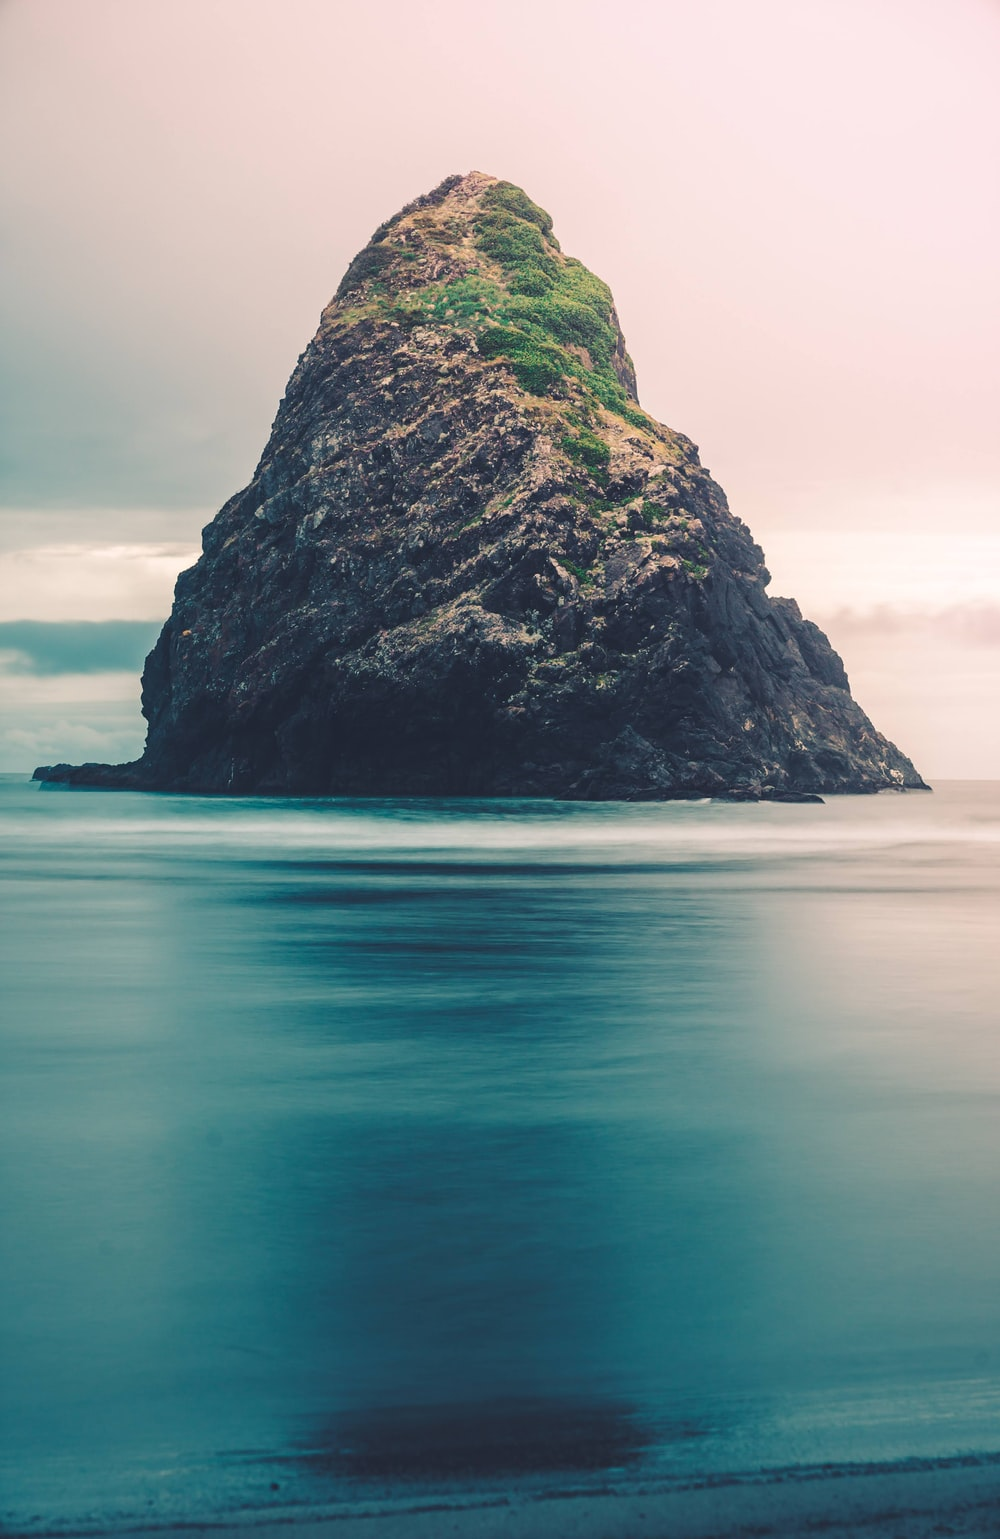 green and black rock formation on blue sea under white sky during daytime